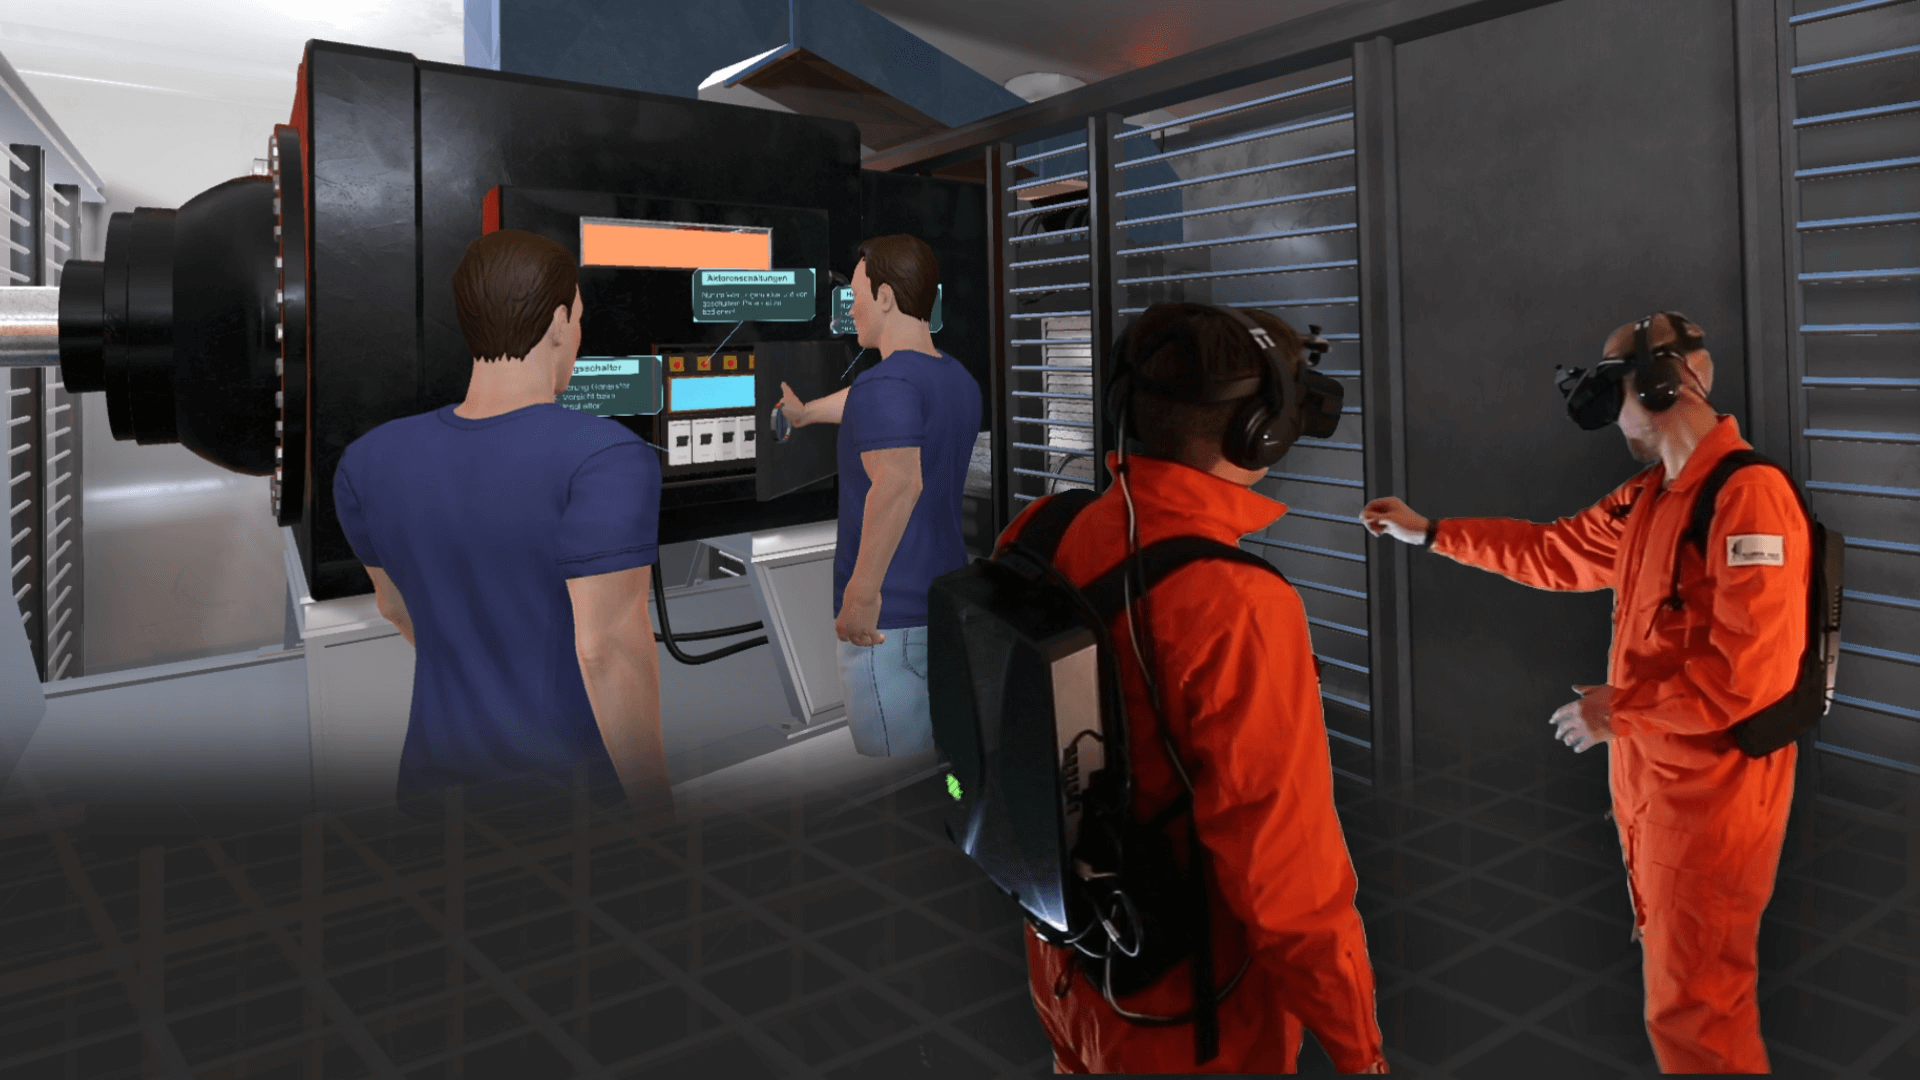 Immersive Deck: photo of user experience in industrial training